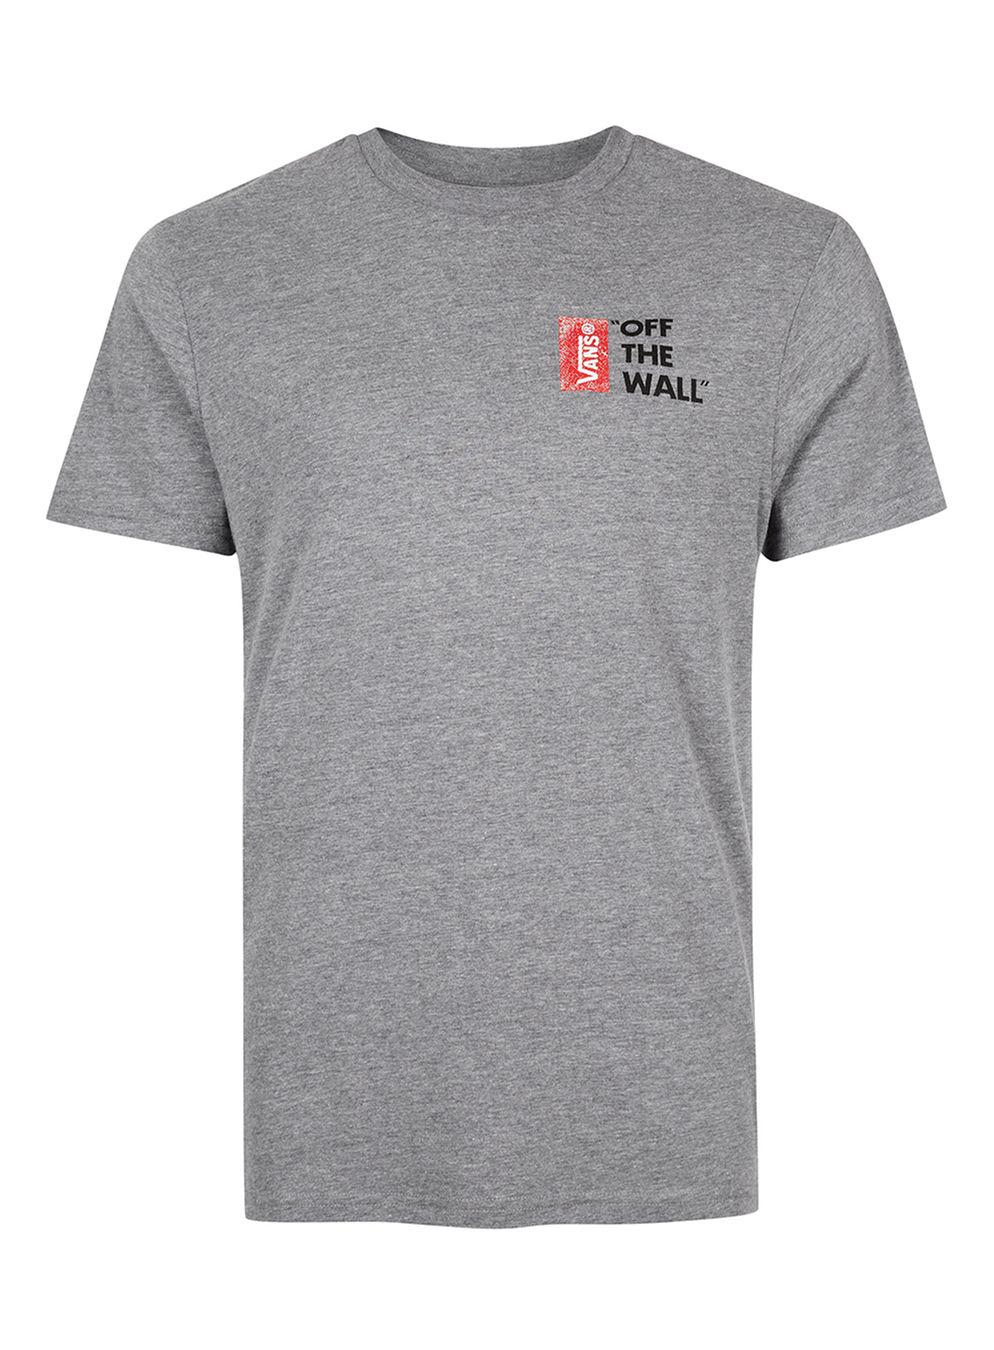 86d50a7f098477 Topman Vans Off The Wall T-shirt in Gray for Men - Lyst